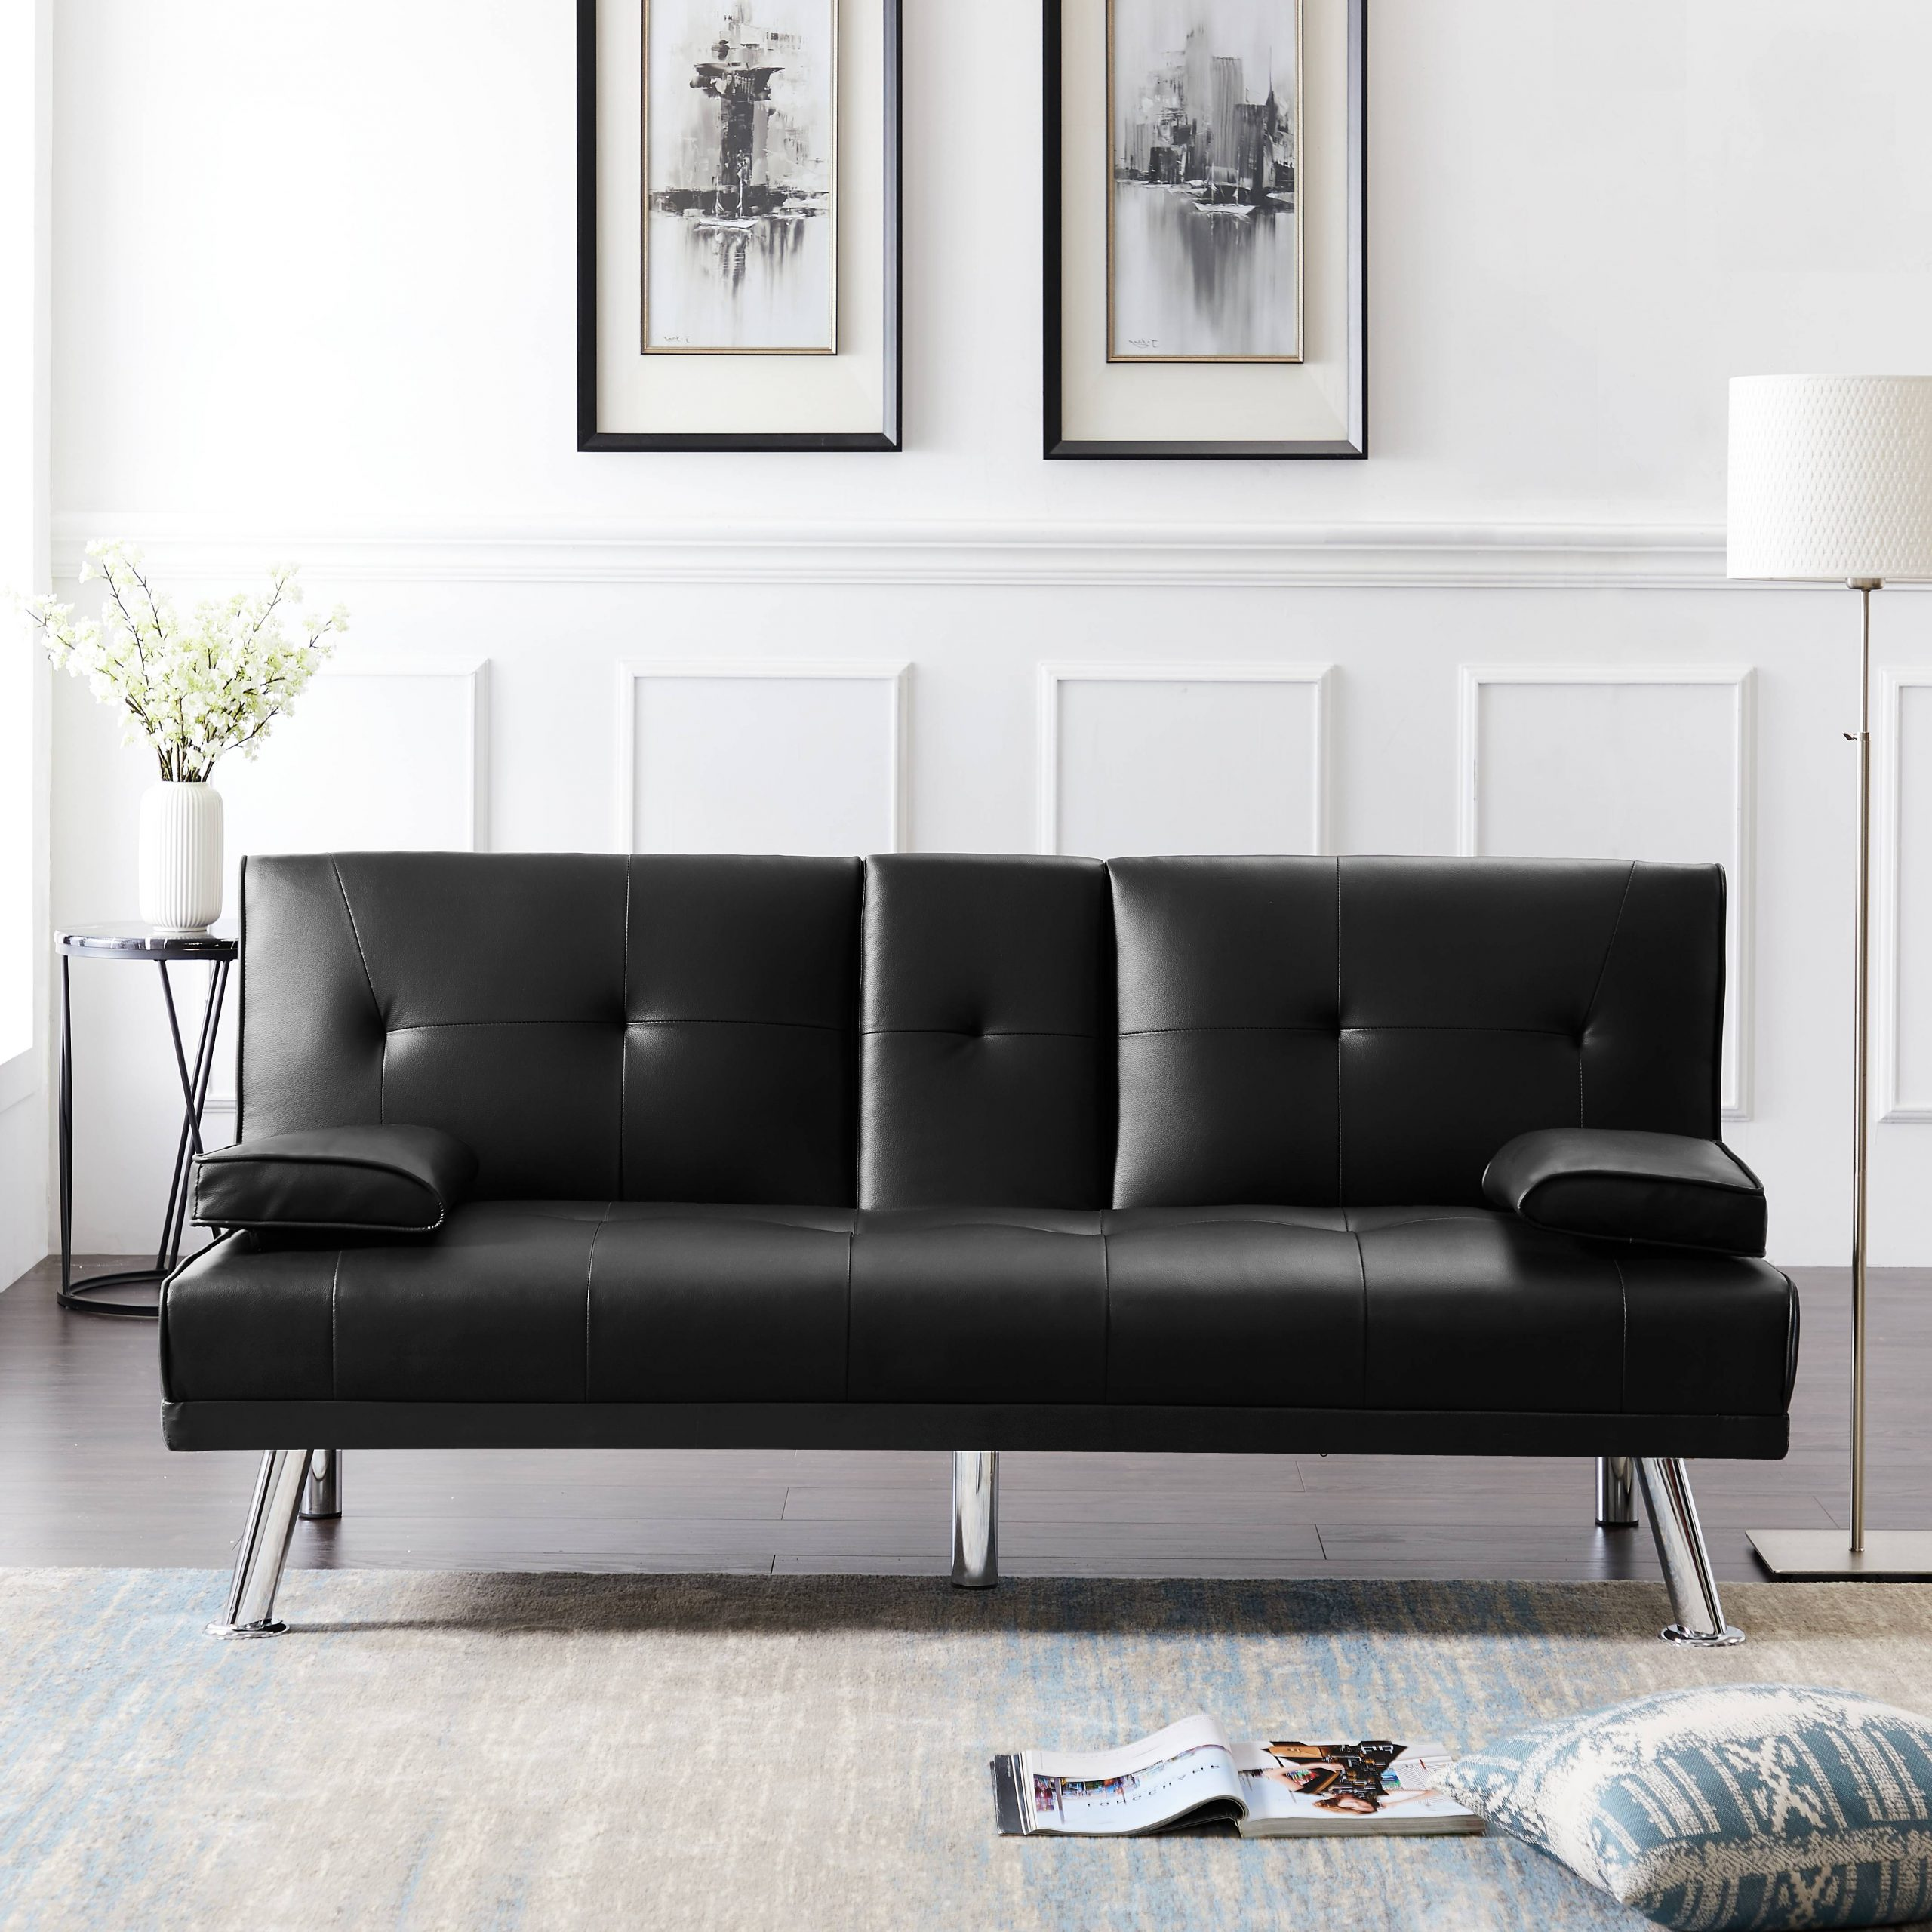 Celine Sectional Futon Sofas With Storage Reclining Couch Regarding Popular Sleeper Sofa, Urhomepro Modern Faux Leather Upholstery (View 8 of 25)